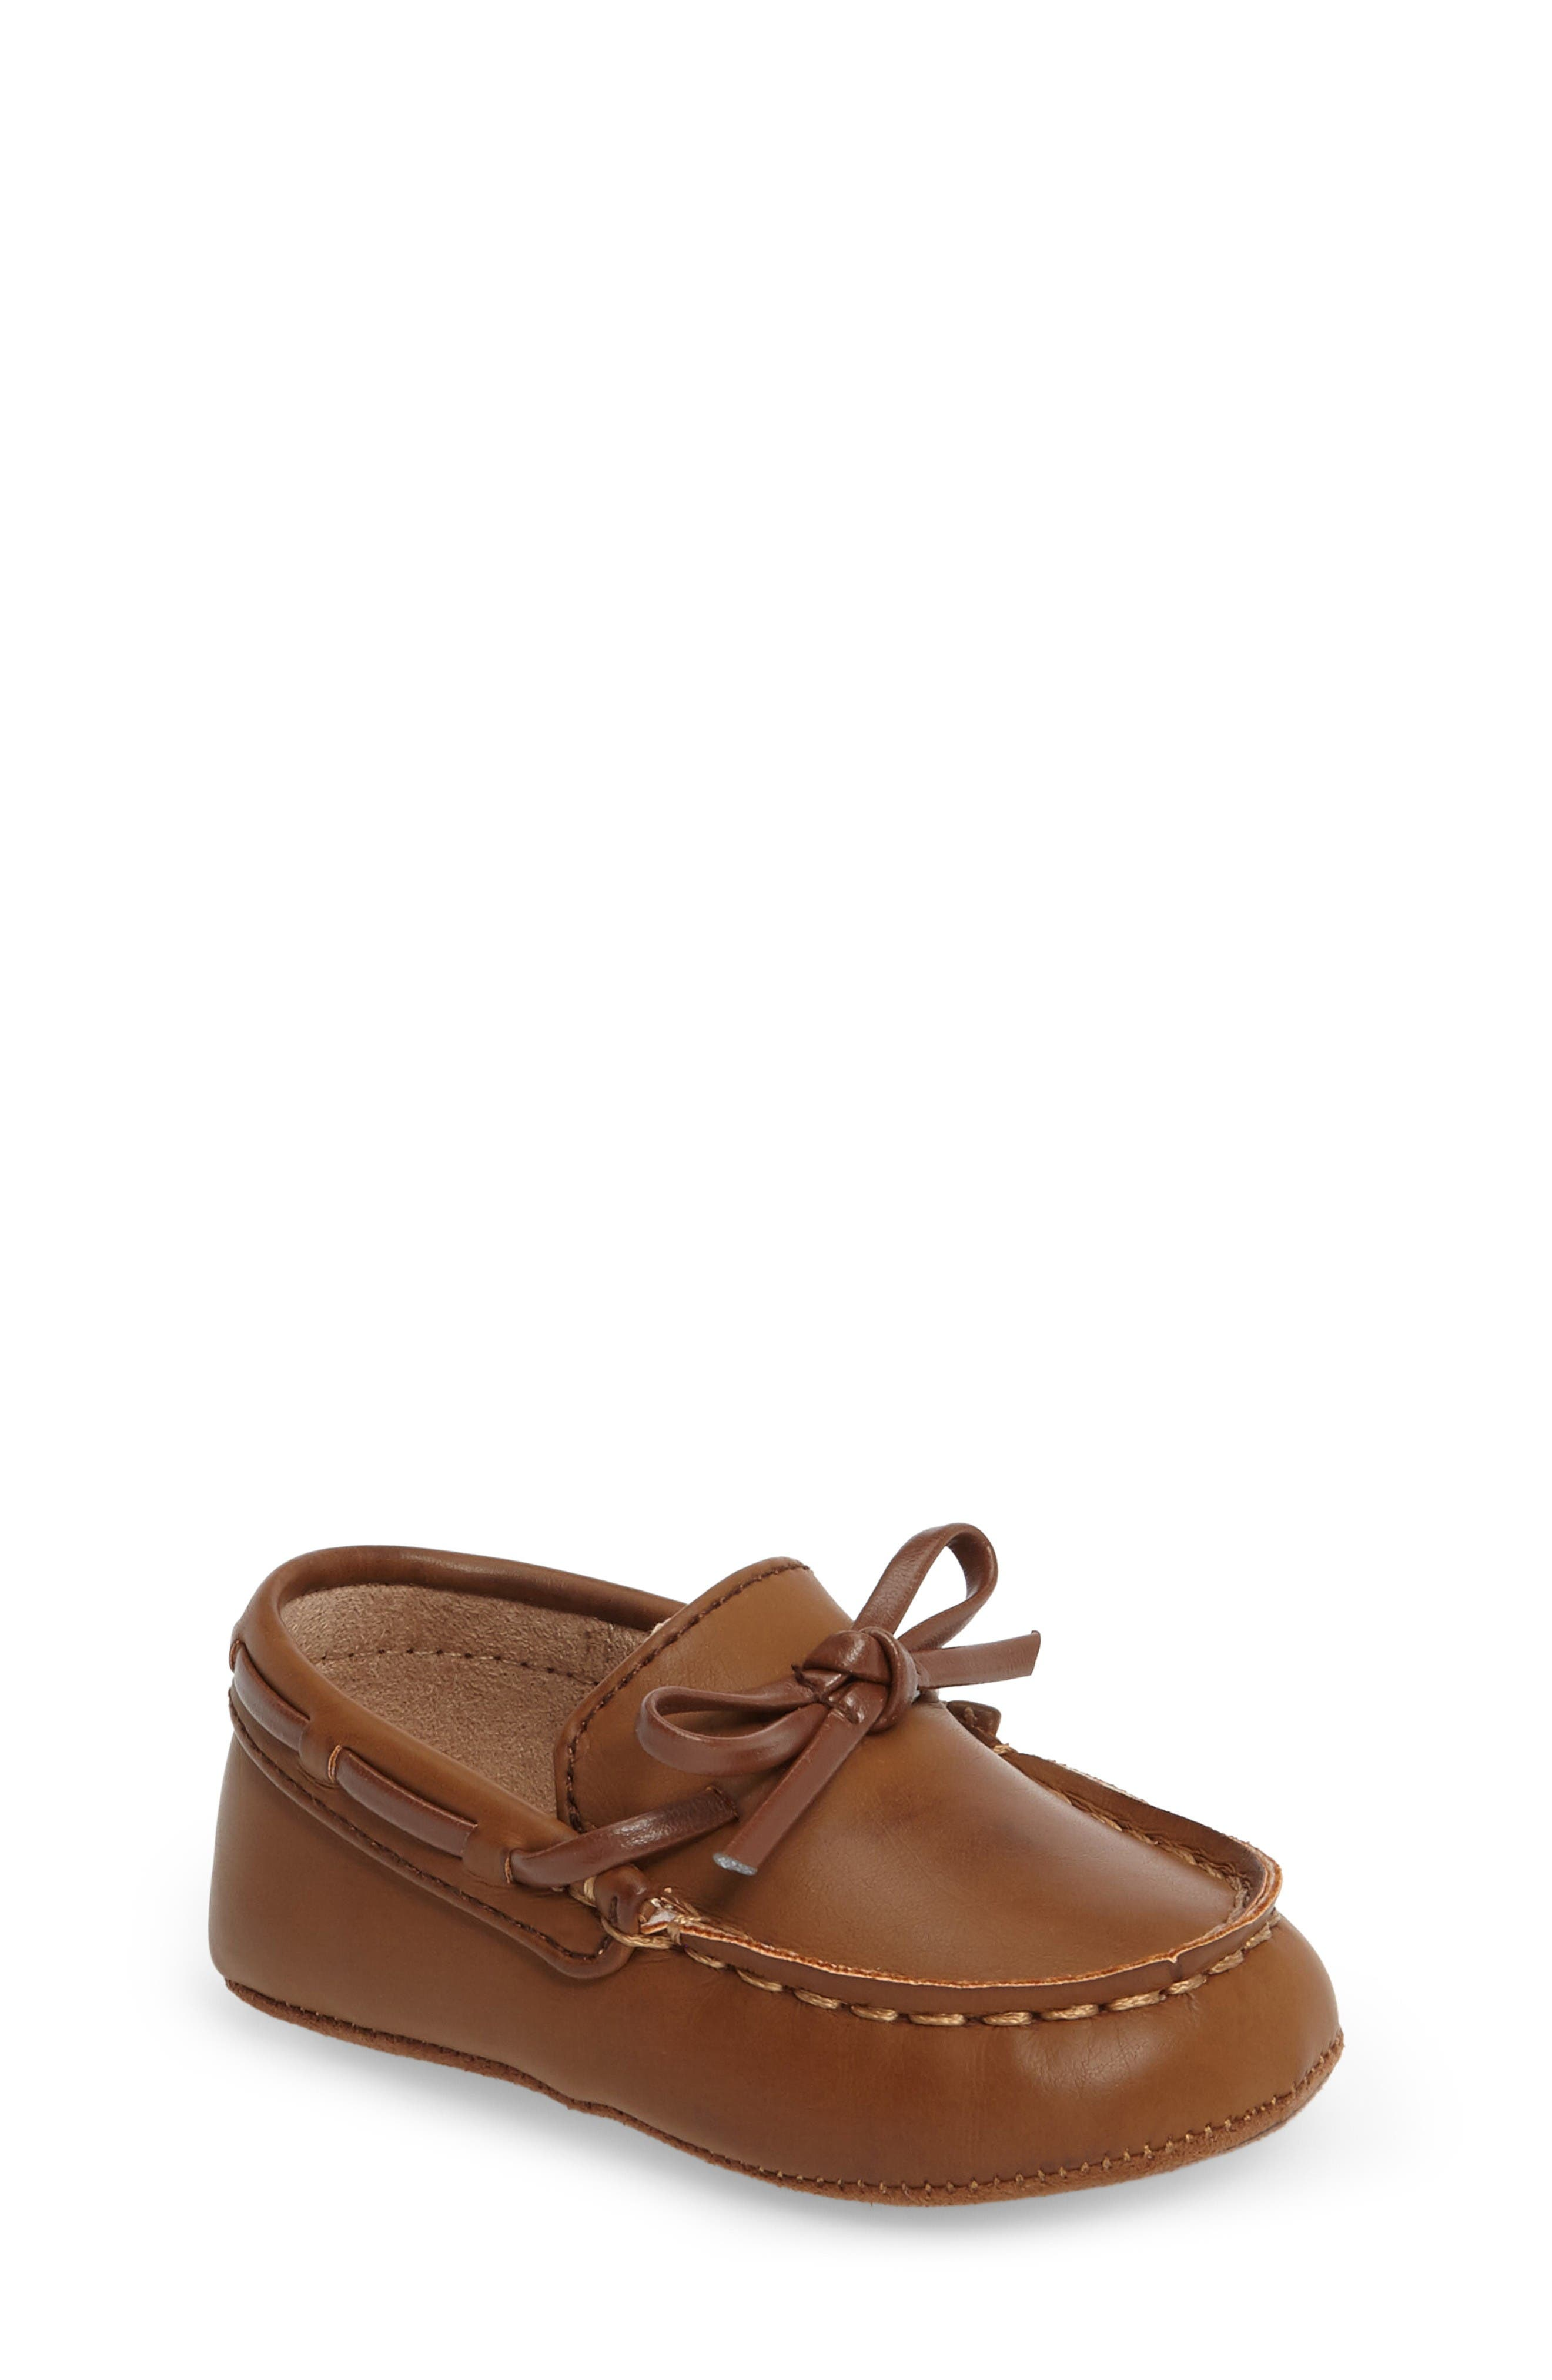 KENNETH COLE NEW YORK Baby Boat Shoe